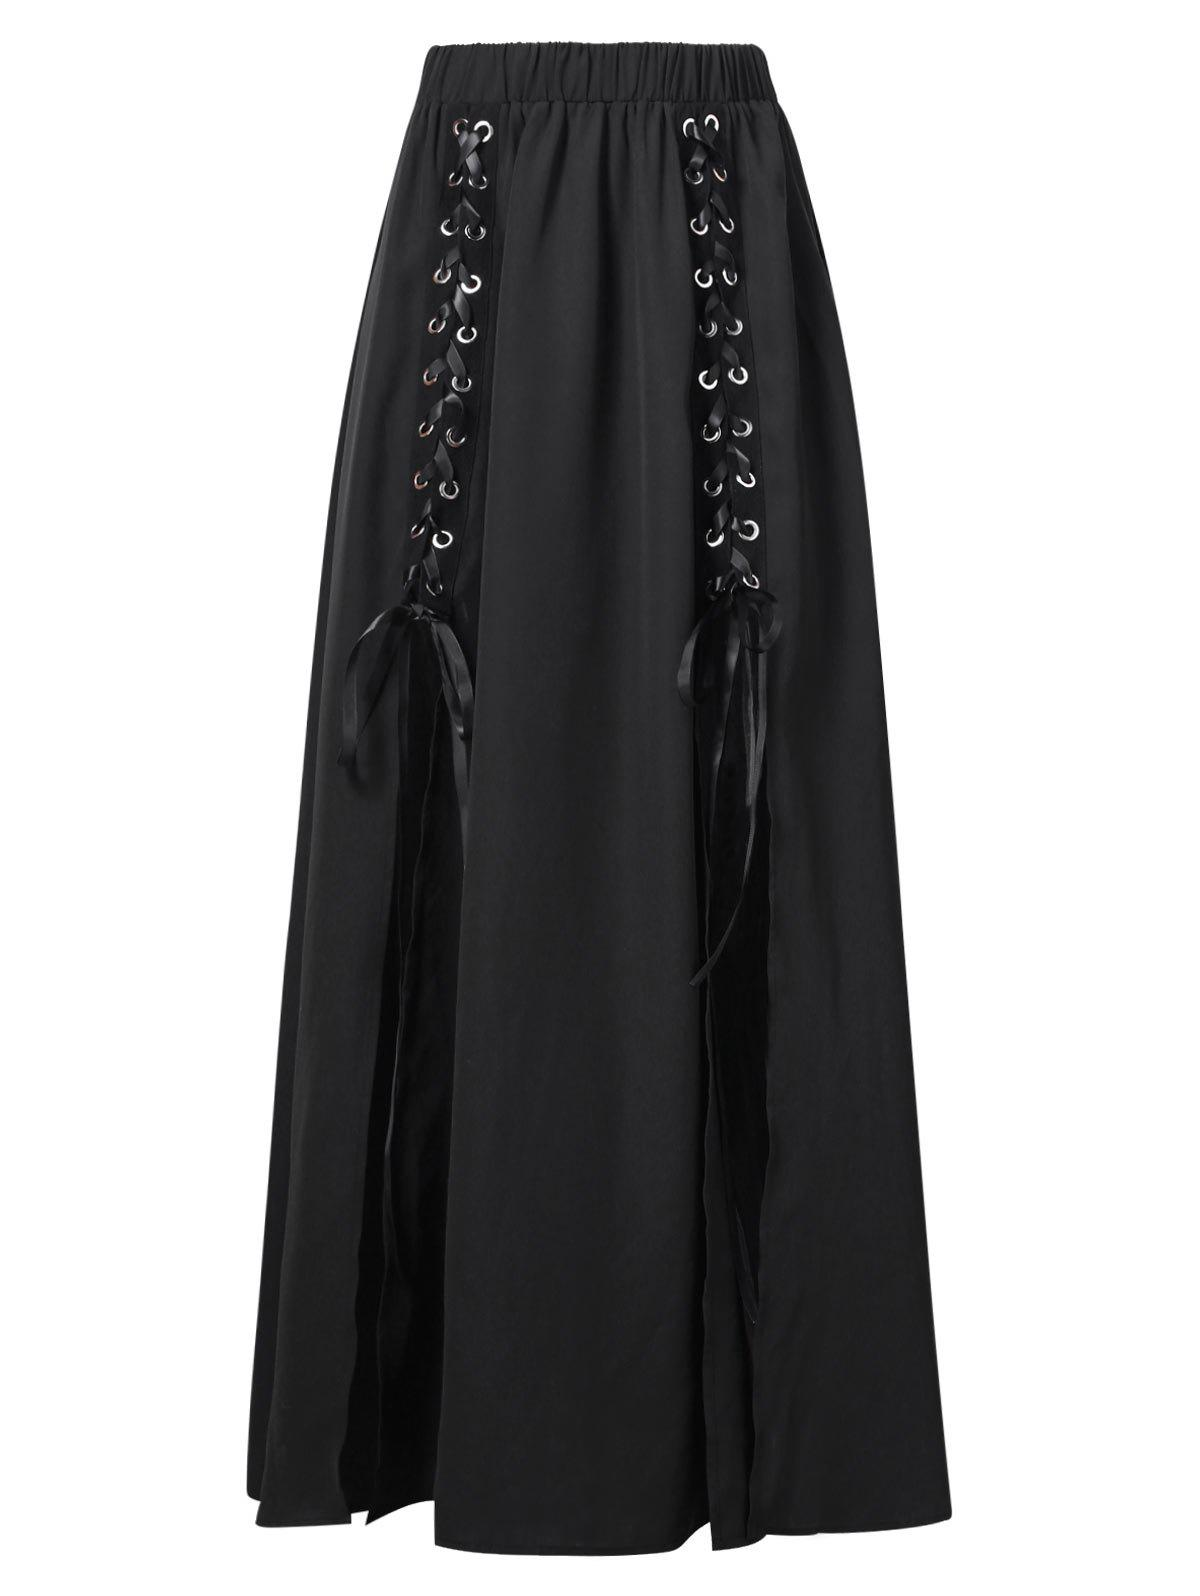 New Lace Up High Slit Maxi Skirt